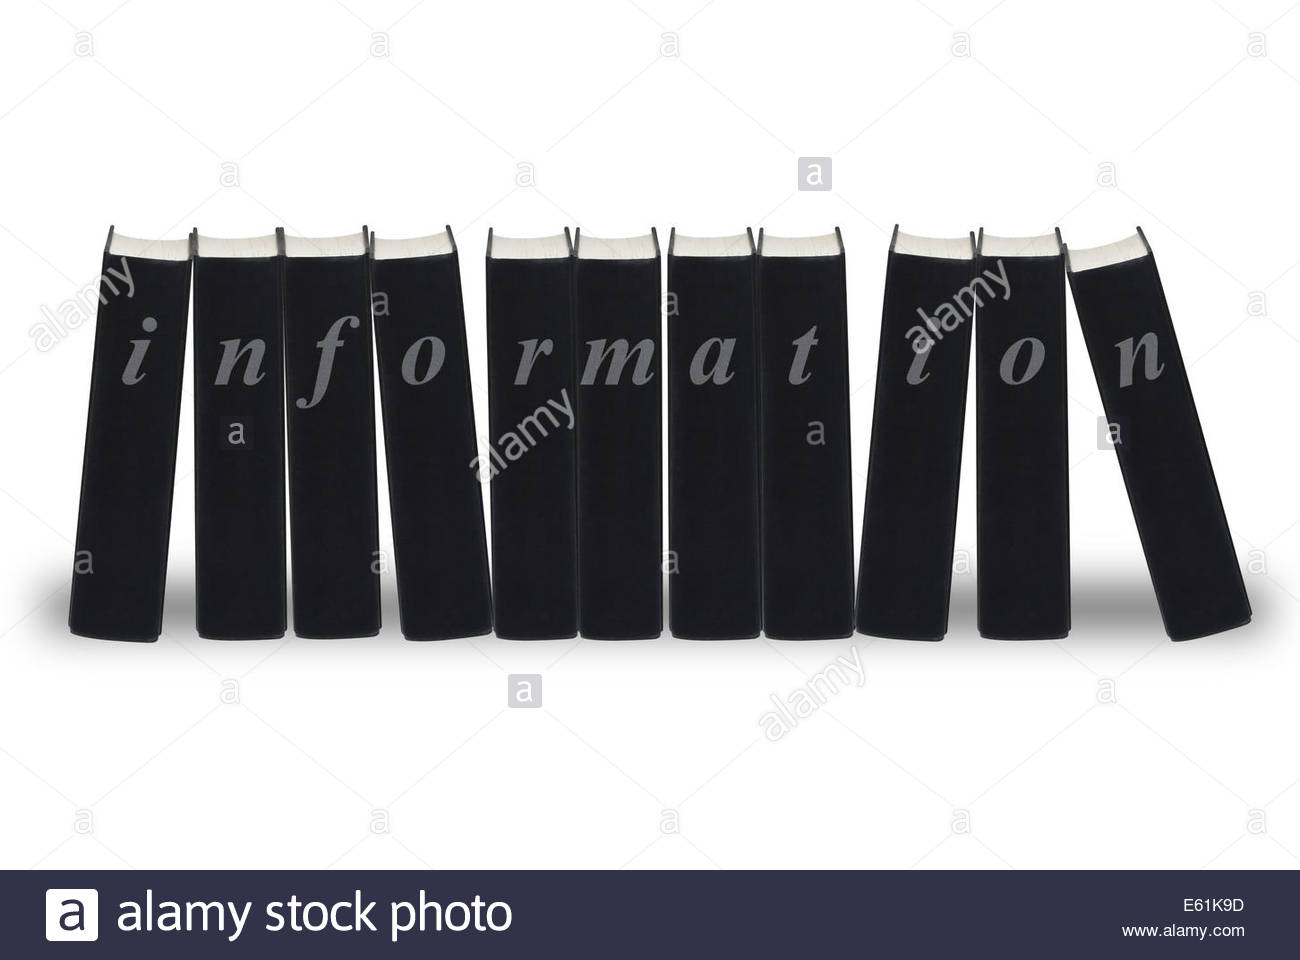 A row of black books each spelling out the word information, isolated on white - Stock Image